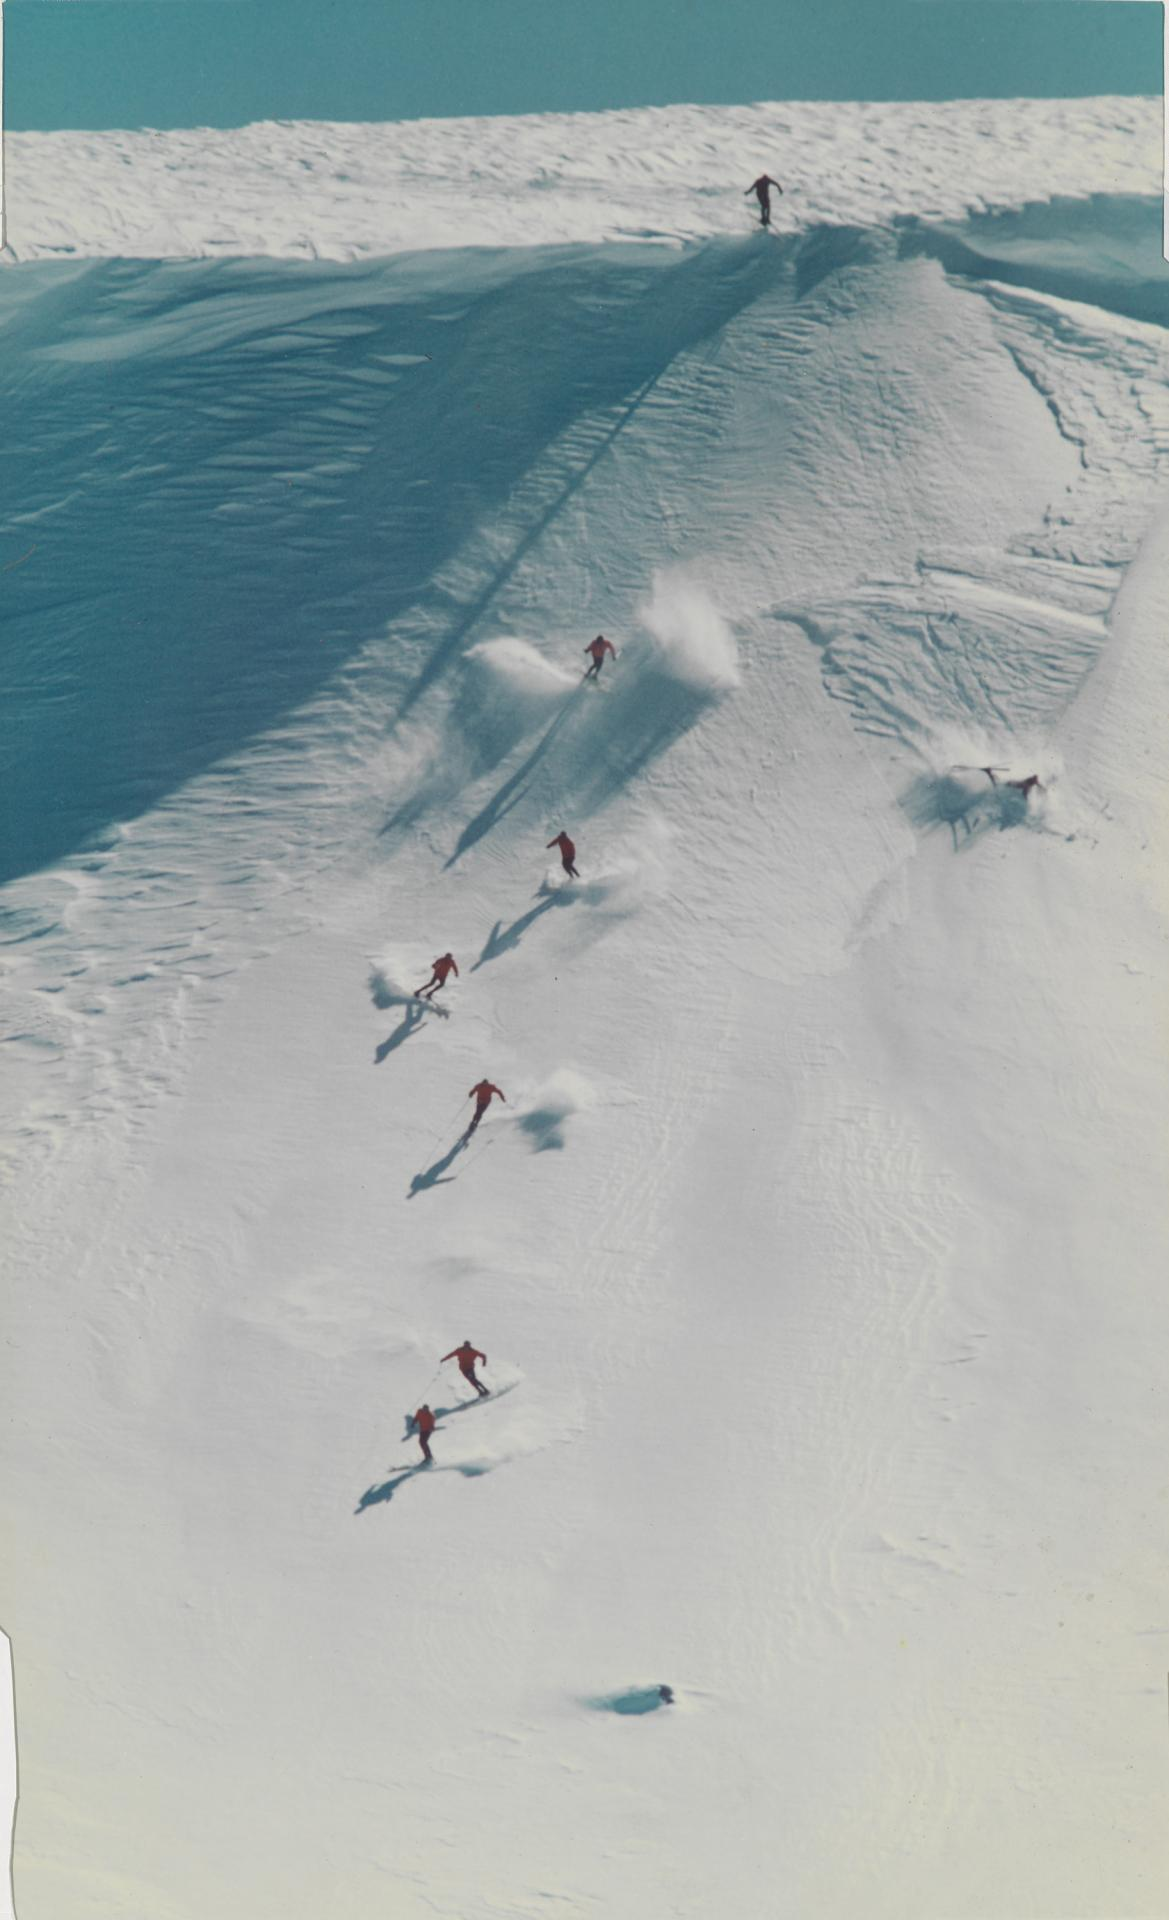 Skiers on Mt. Kosciosko